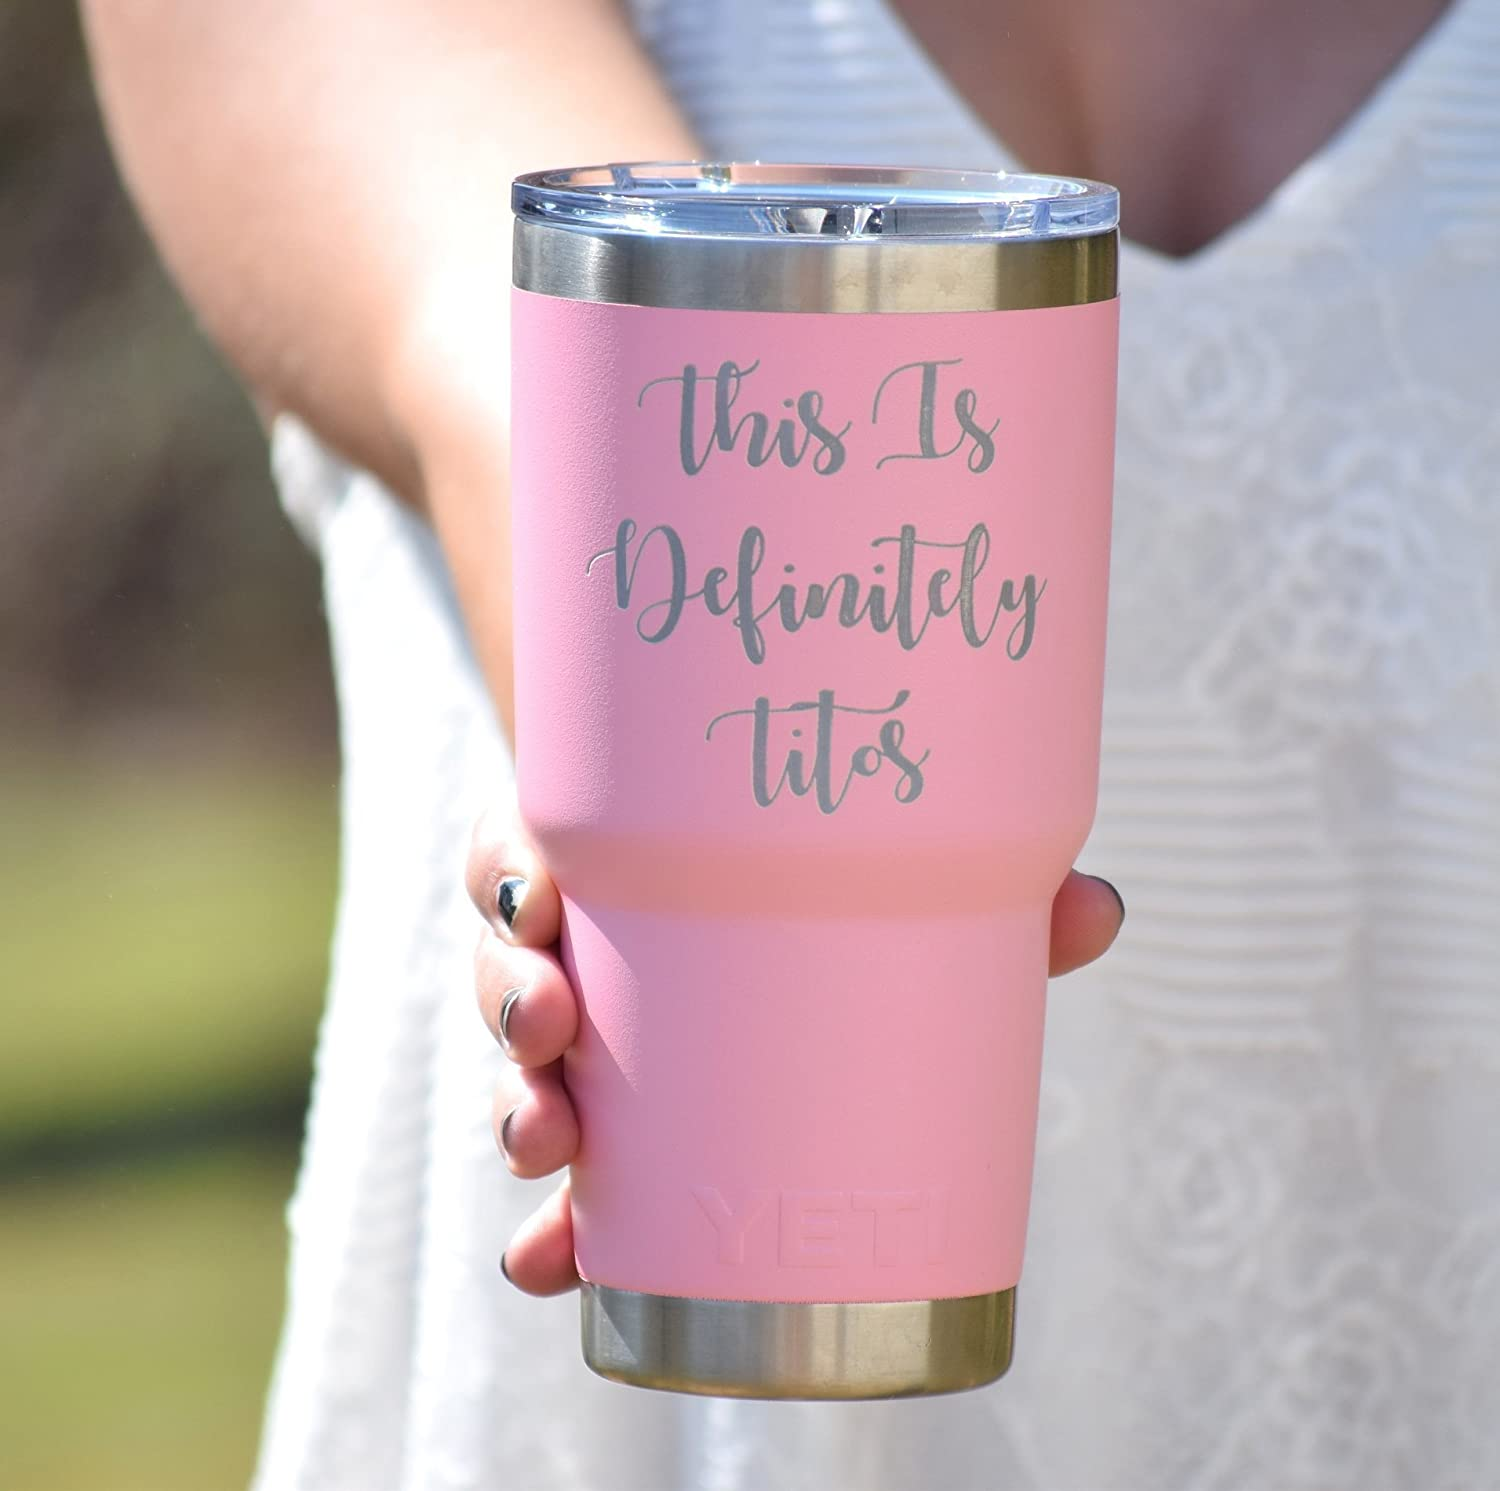 5921a606f0b Personalized Yeti Tumbler Additional Colors Available - Engraved Yeti  Rambler - 20 oz Yeti - 30 oz Yeti - Personalized Yeti - Yeti Gift - Laser  ...